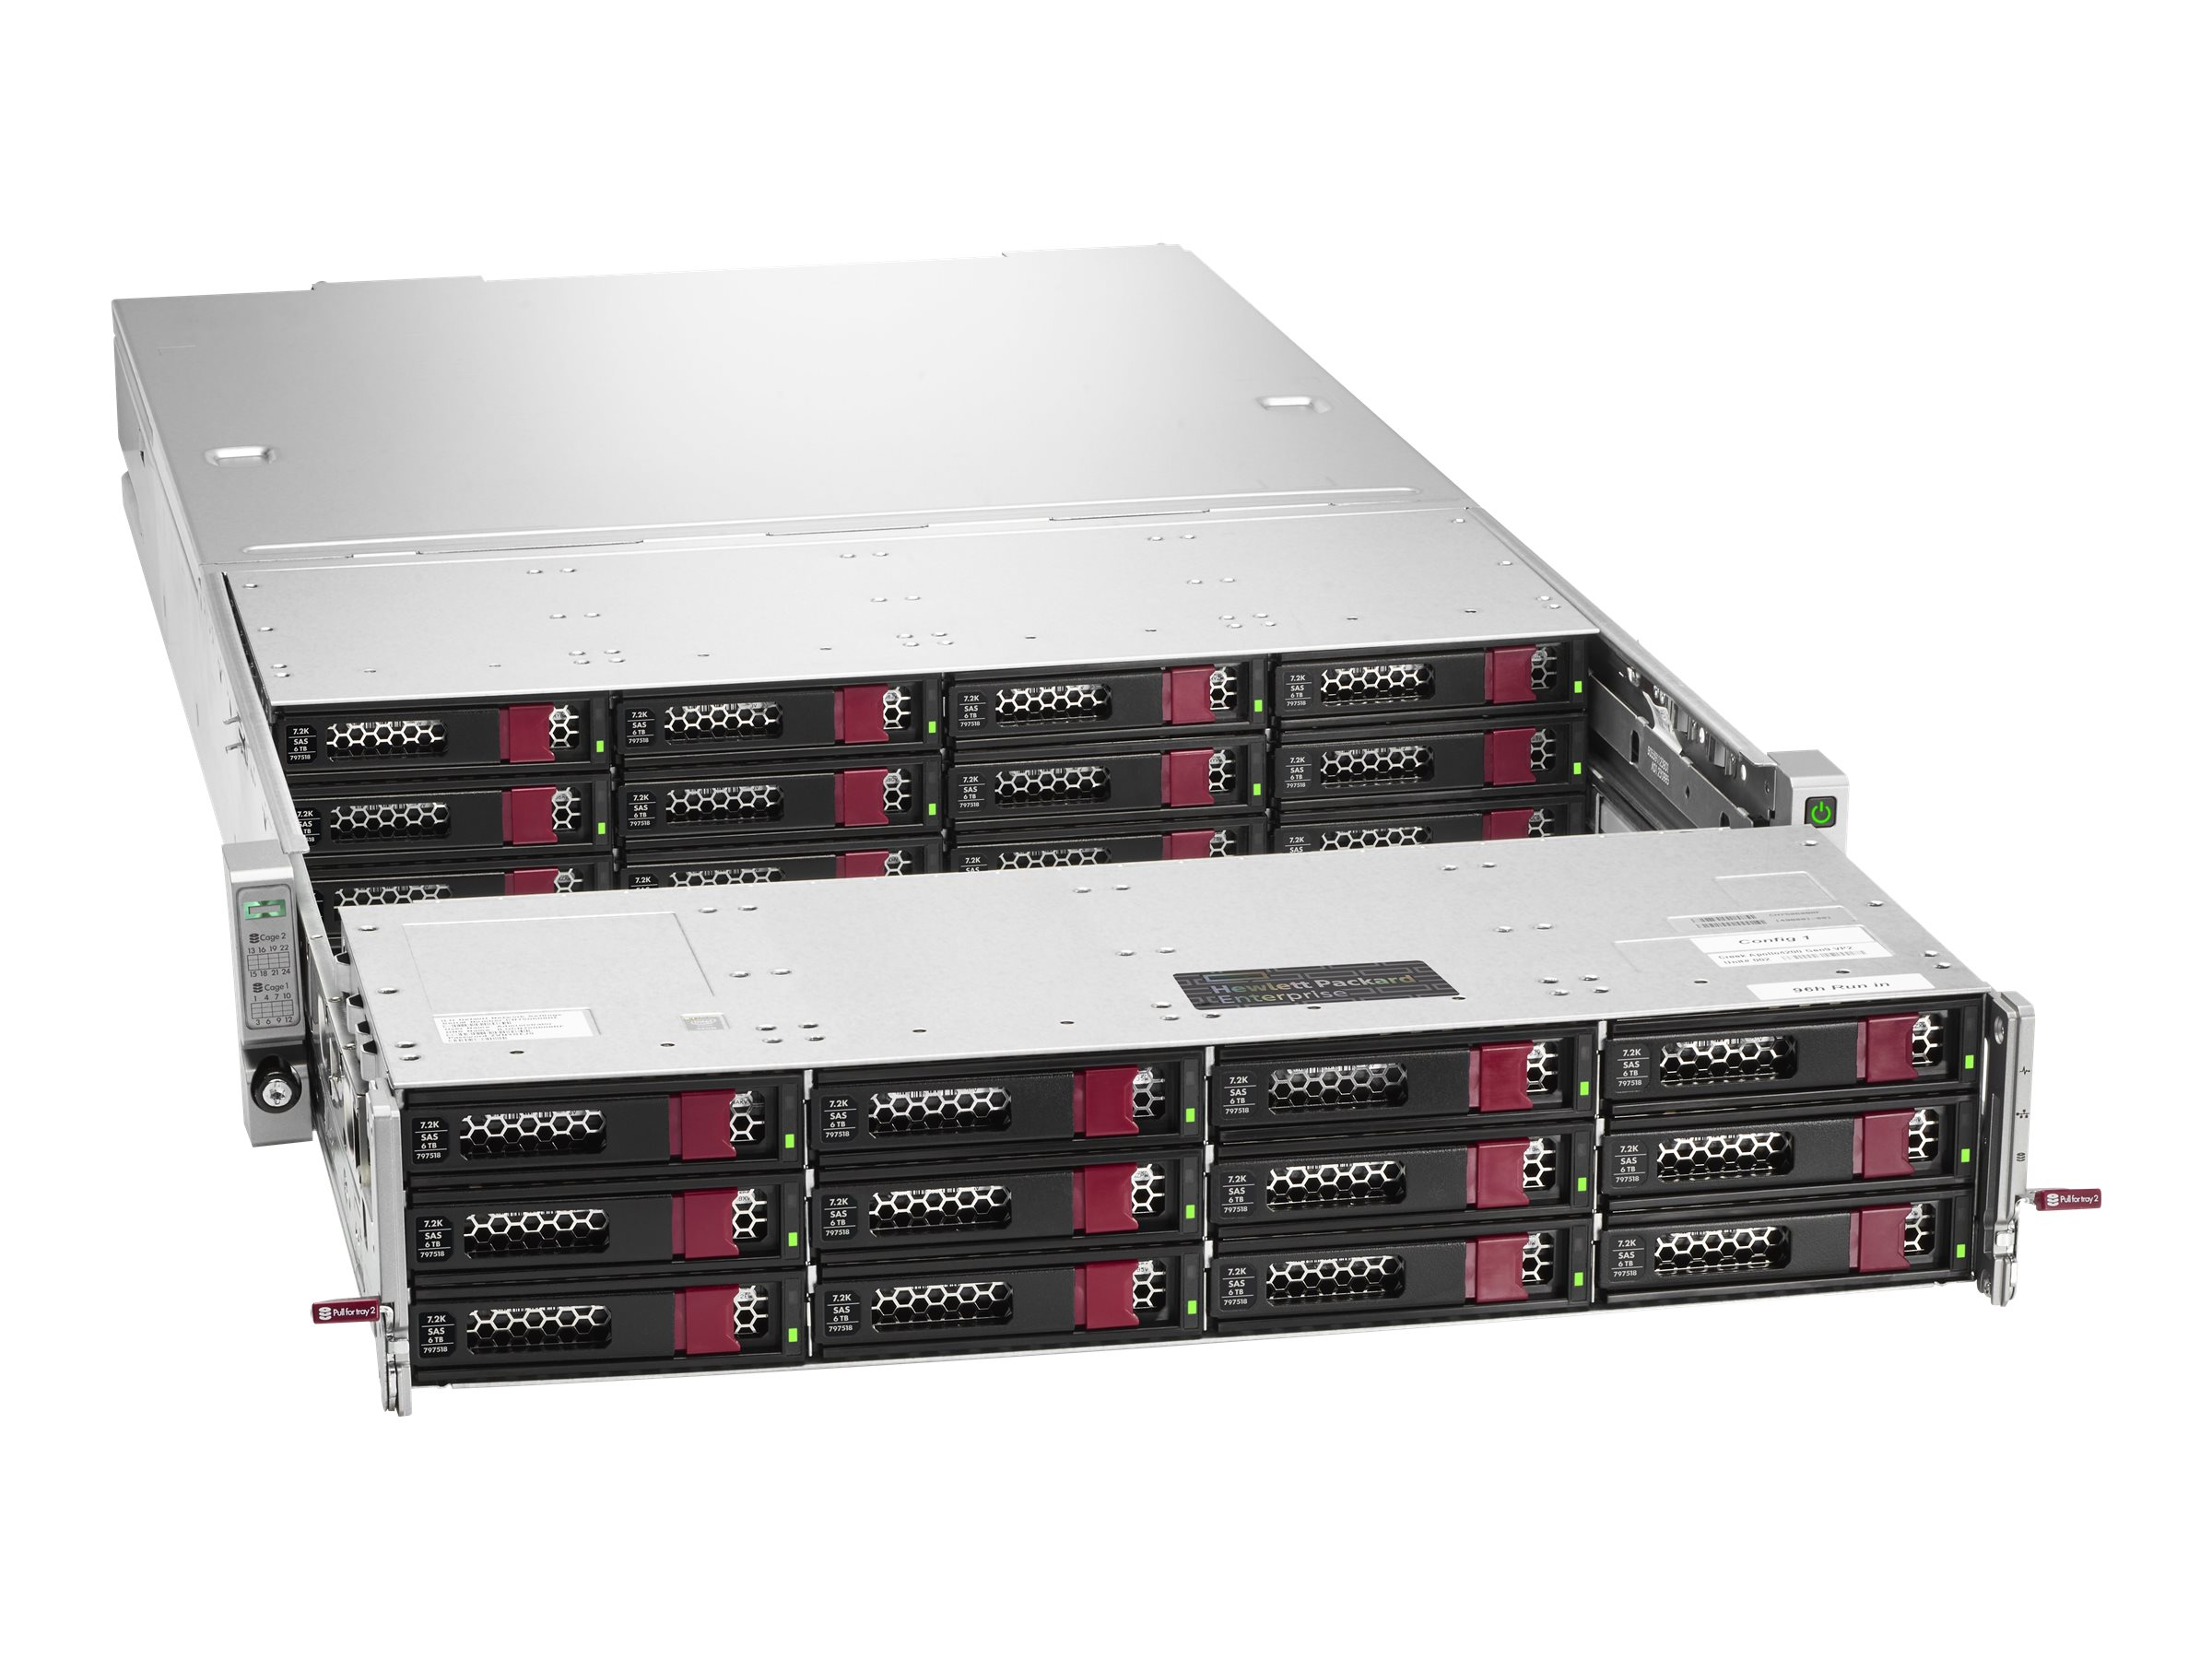 HPE Apollo 4200 Gen10 336TB Archive Node with 25Gb NIC for Qumulo - rack-mountable - Xeon Silver 4210R 2.4 GHz - 128 GB…